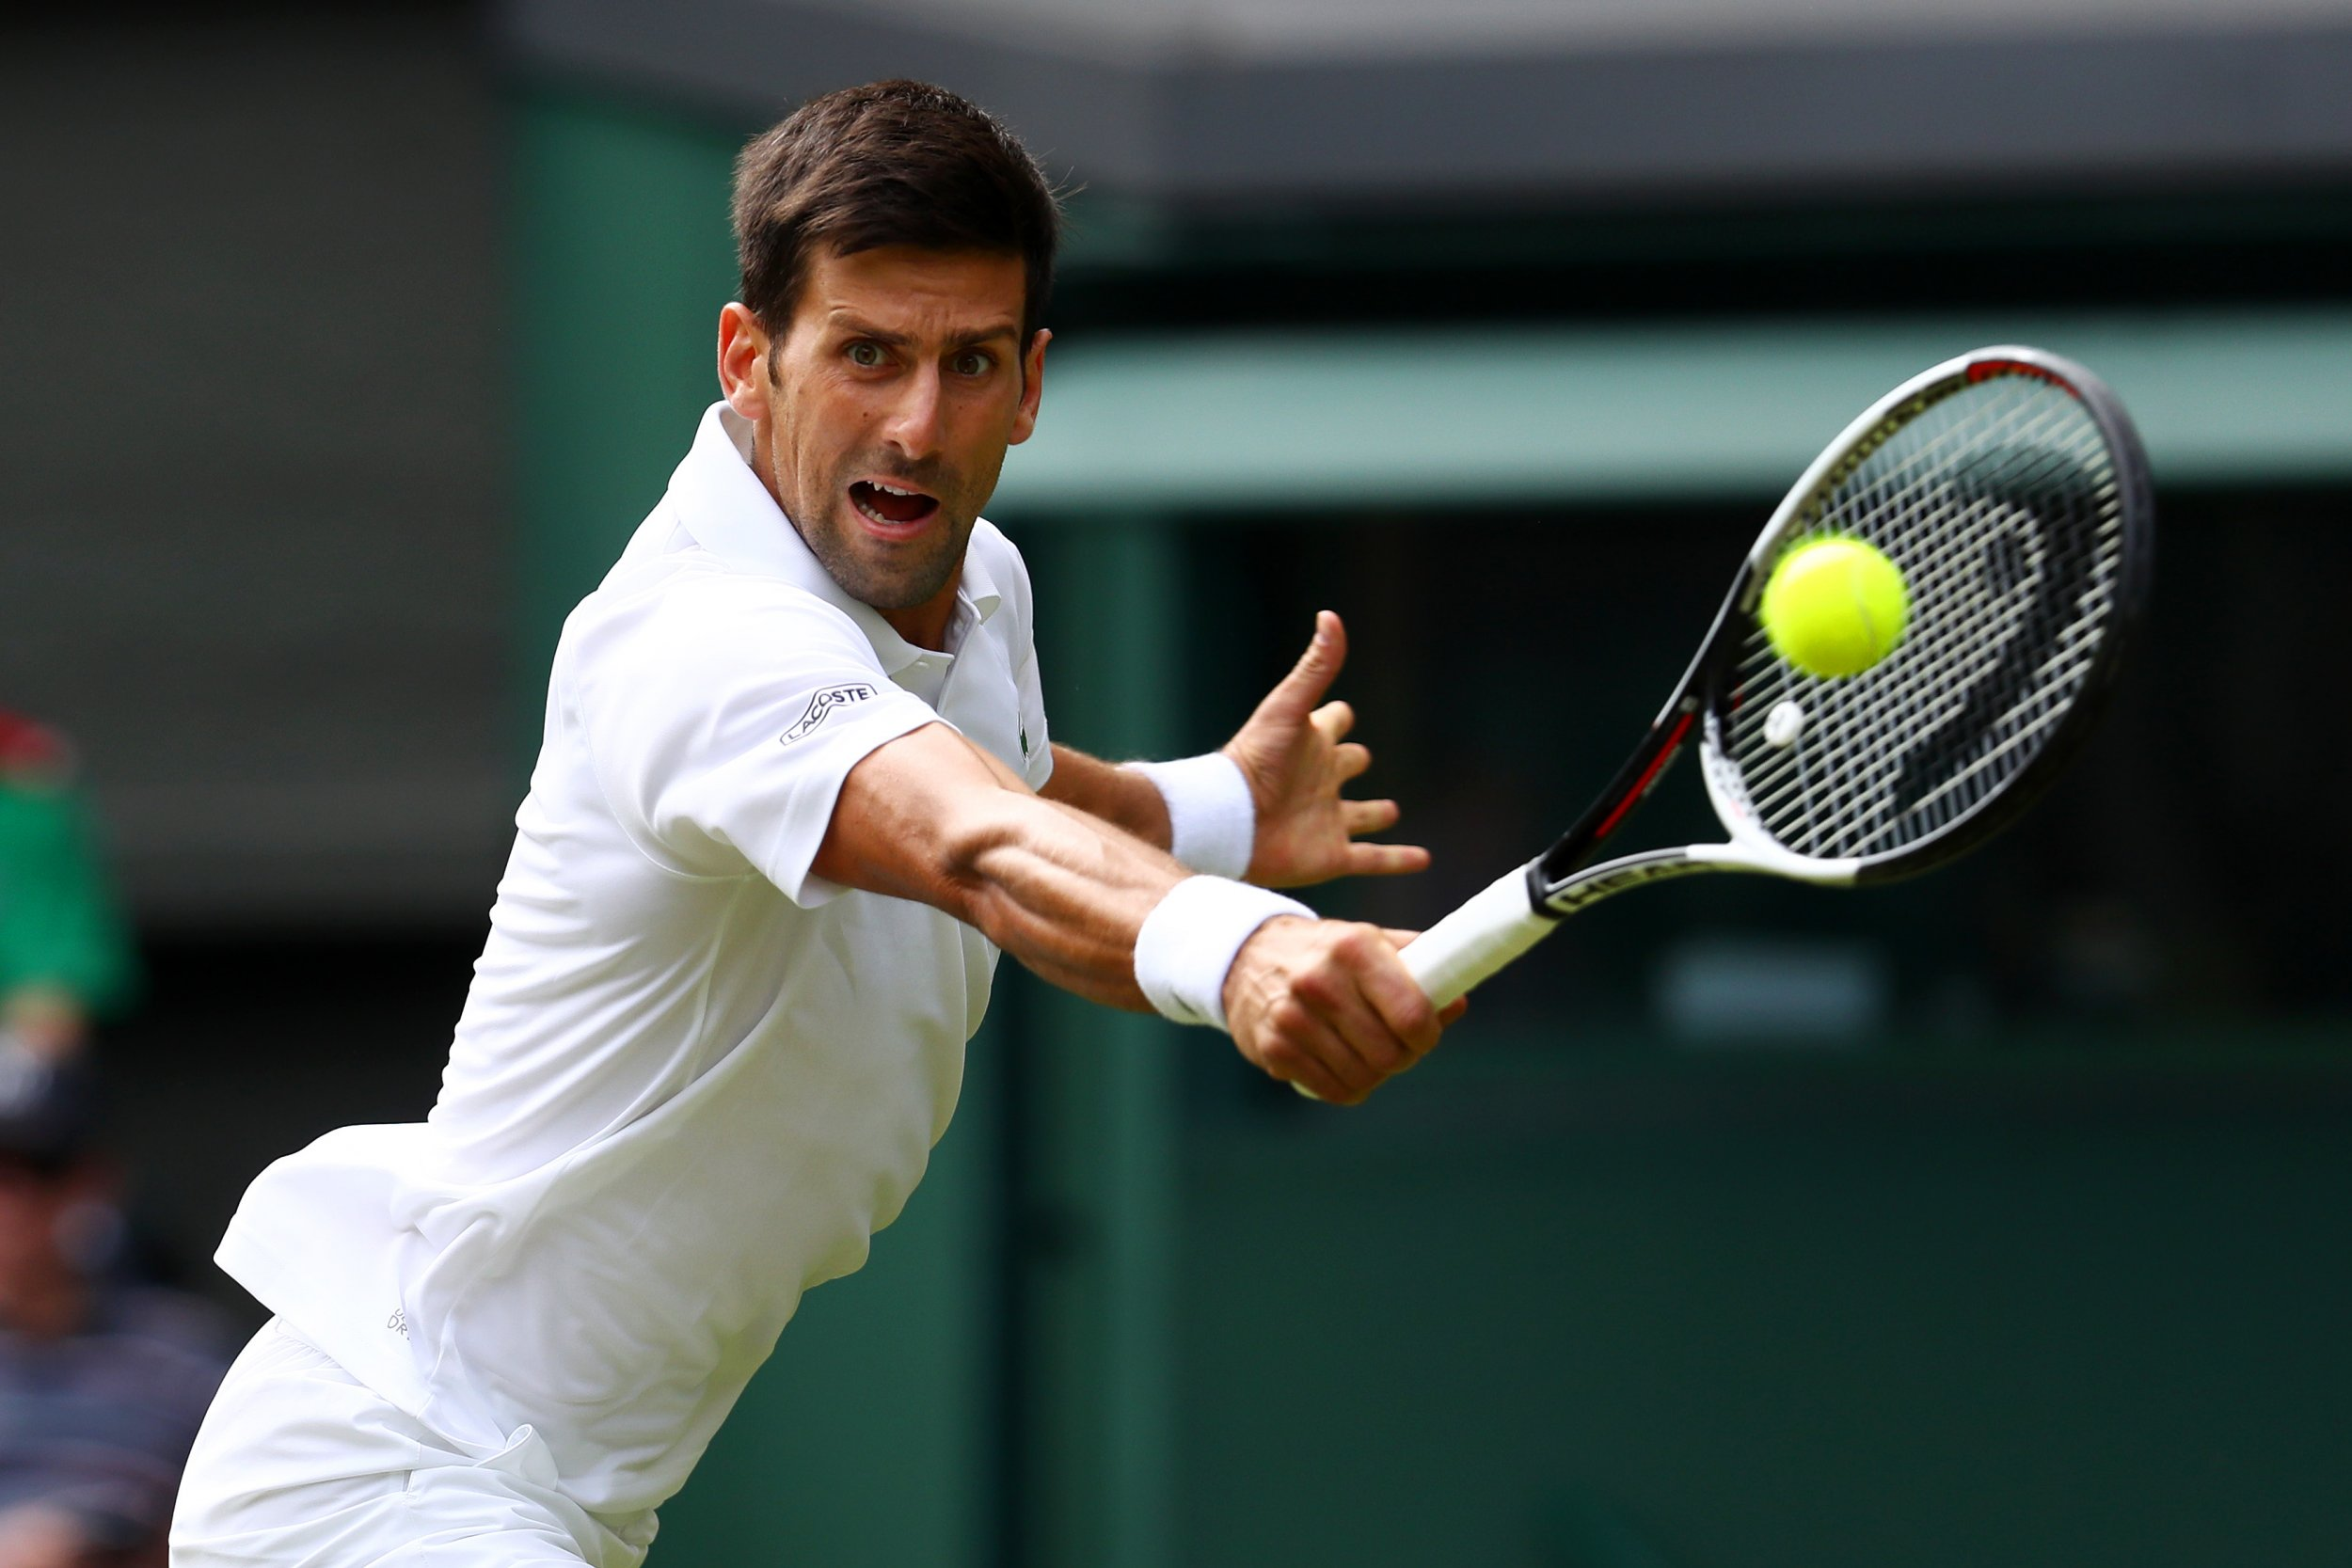 World number four tennis player Novak Djokovic.